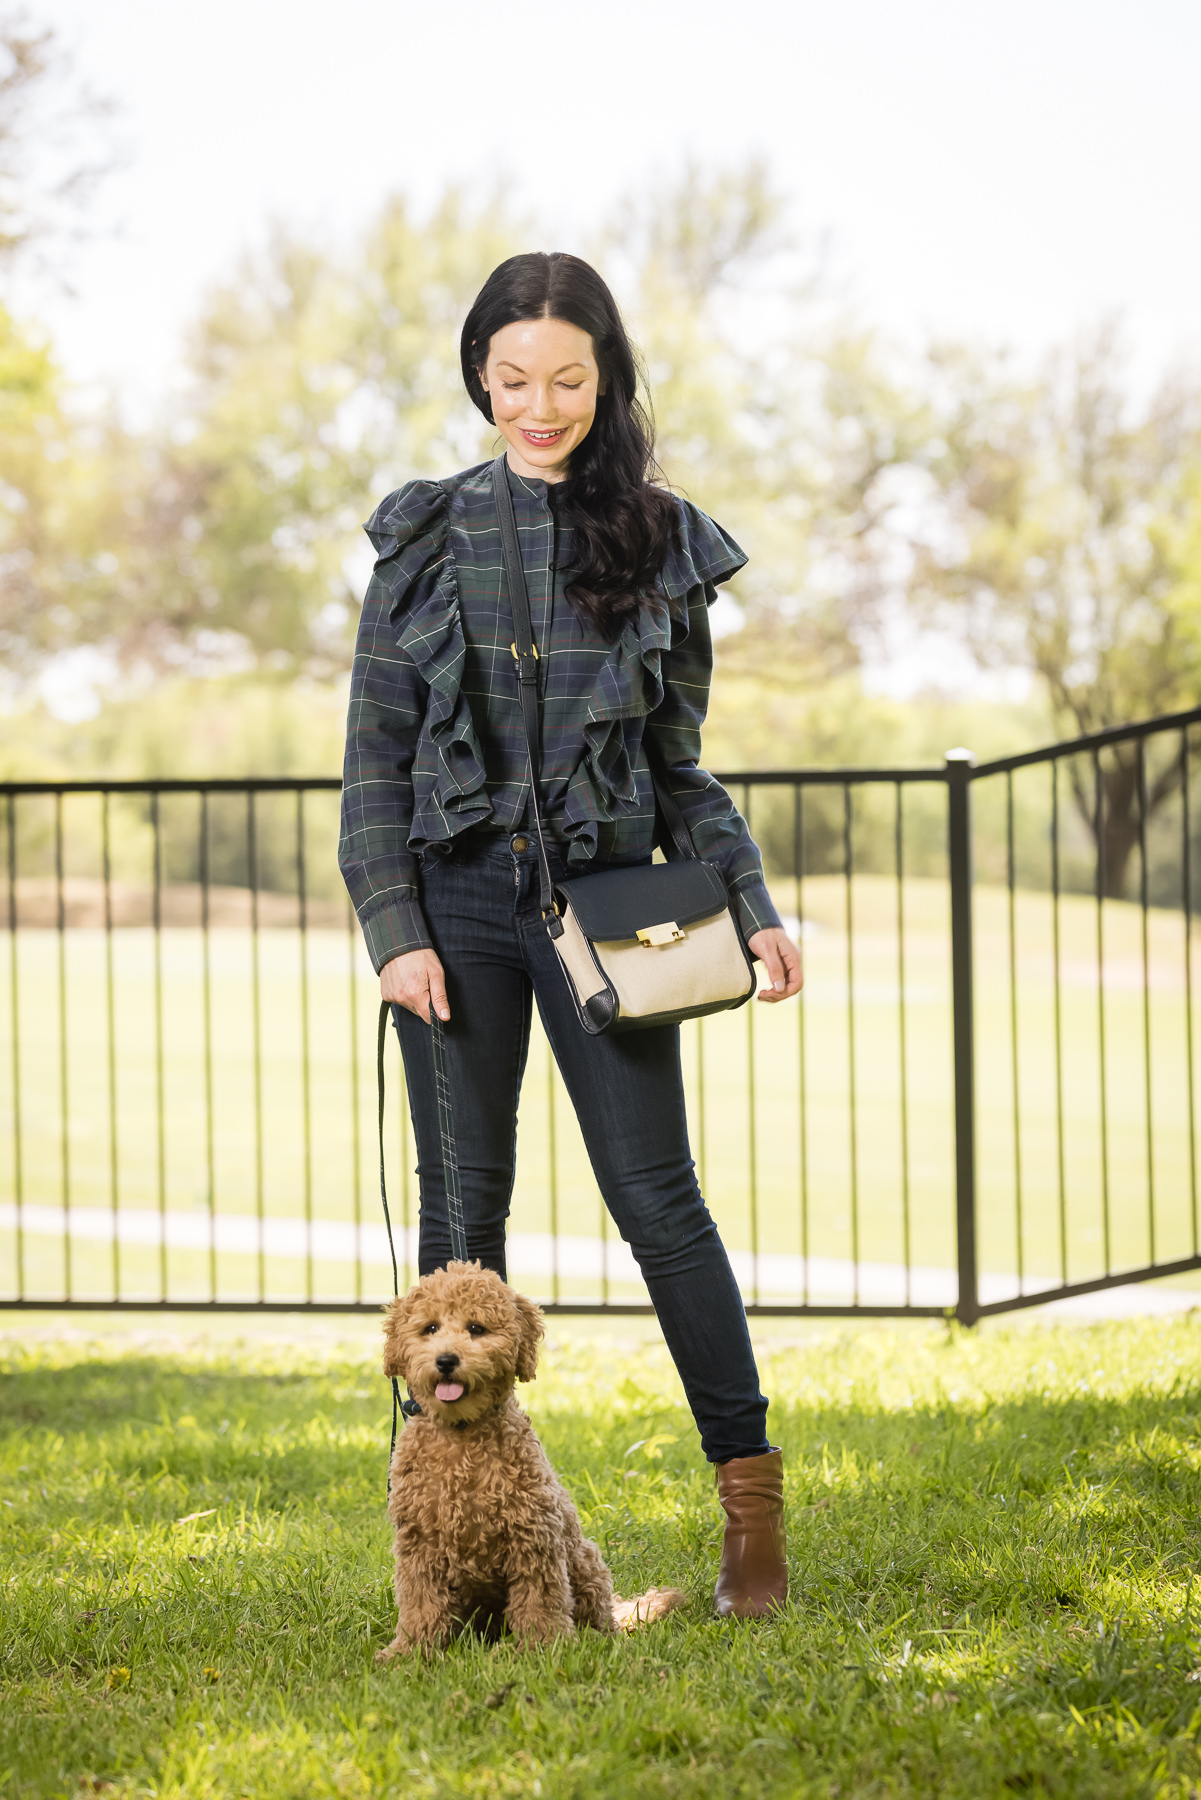 GoldenDoodle Puppy, Tartan Blouse, Tartan Bowtie and Leash, Meet My New Puppy, New Puppy Cuteness, Matching Mom and Dog Outfits, Pretty Little Shoppers Blog, Dallas Lifestyle Blog #GoldenDoodlePuppy #MeetMyPup |Charlie Cupcake by popular Dallas lifestyle blog, Pretty Little Shoppers: image of a woman wearing a plaid ruffle top and jeans and standing next to her goldendoodle puppy.